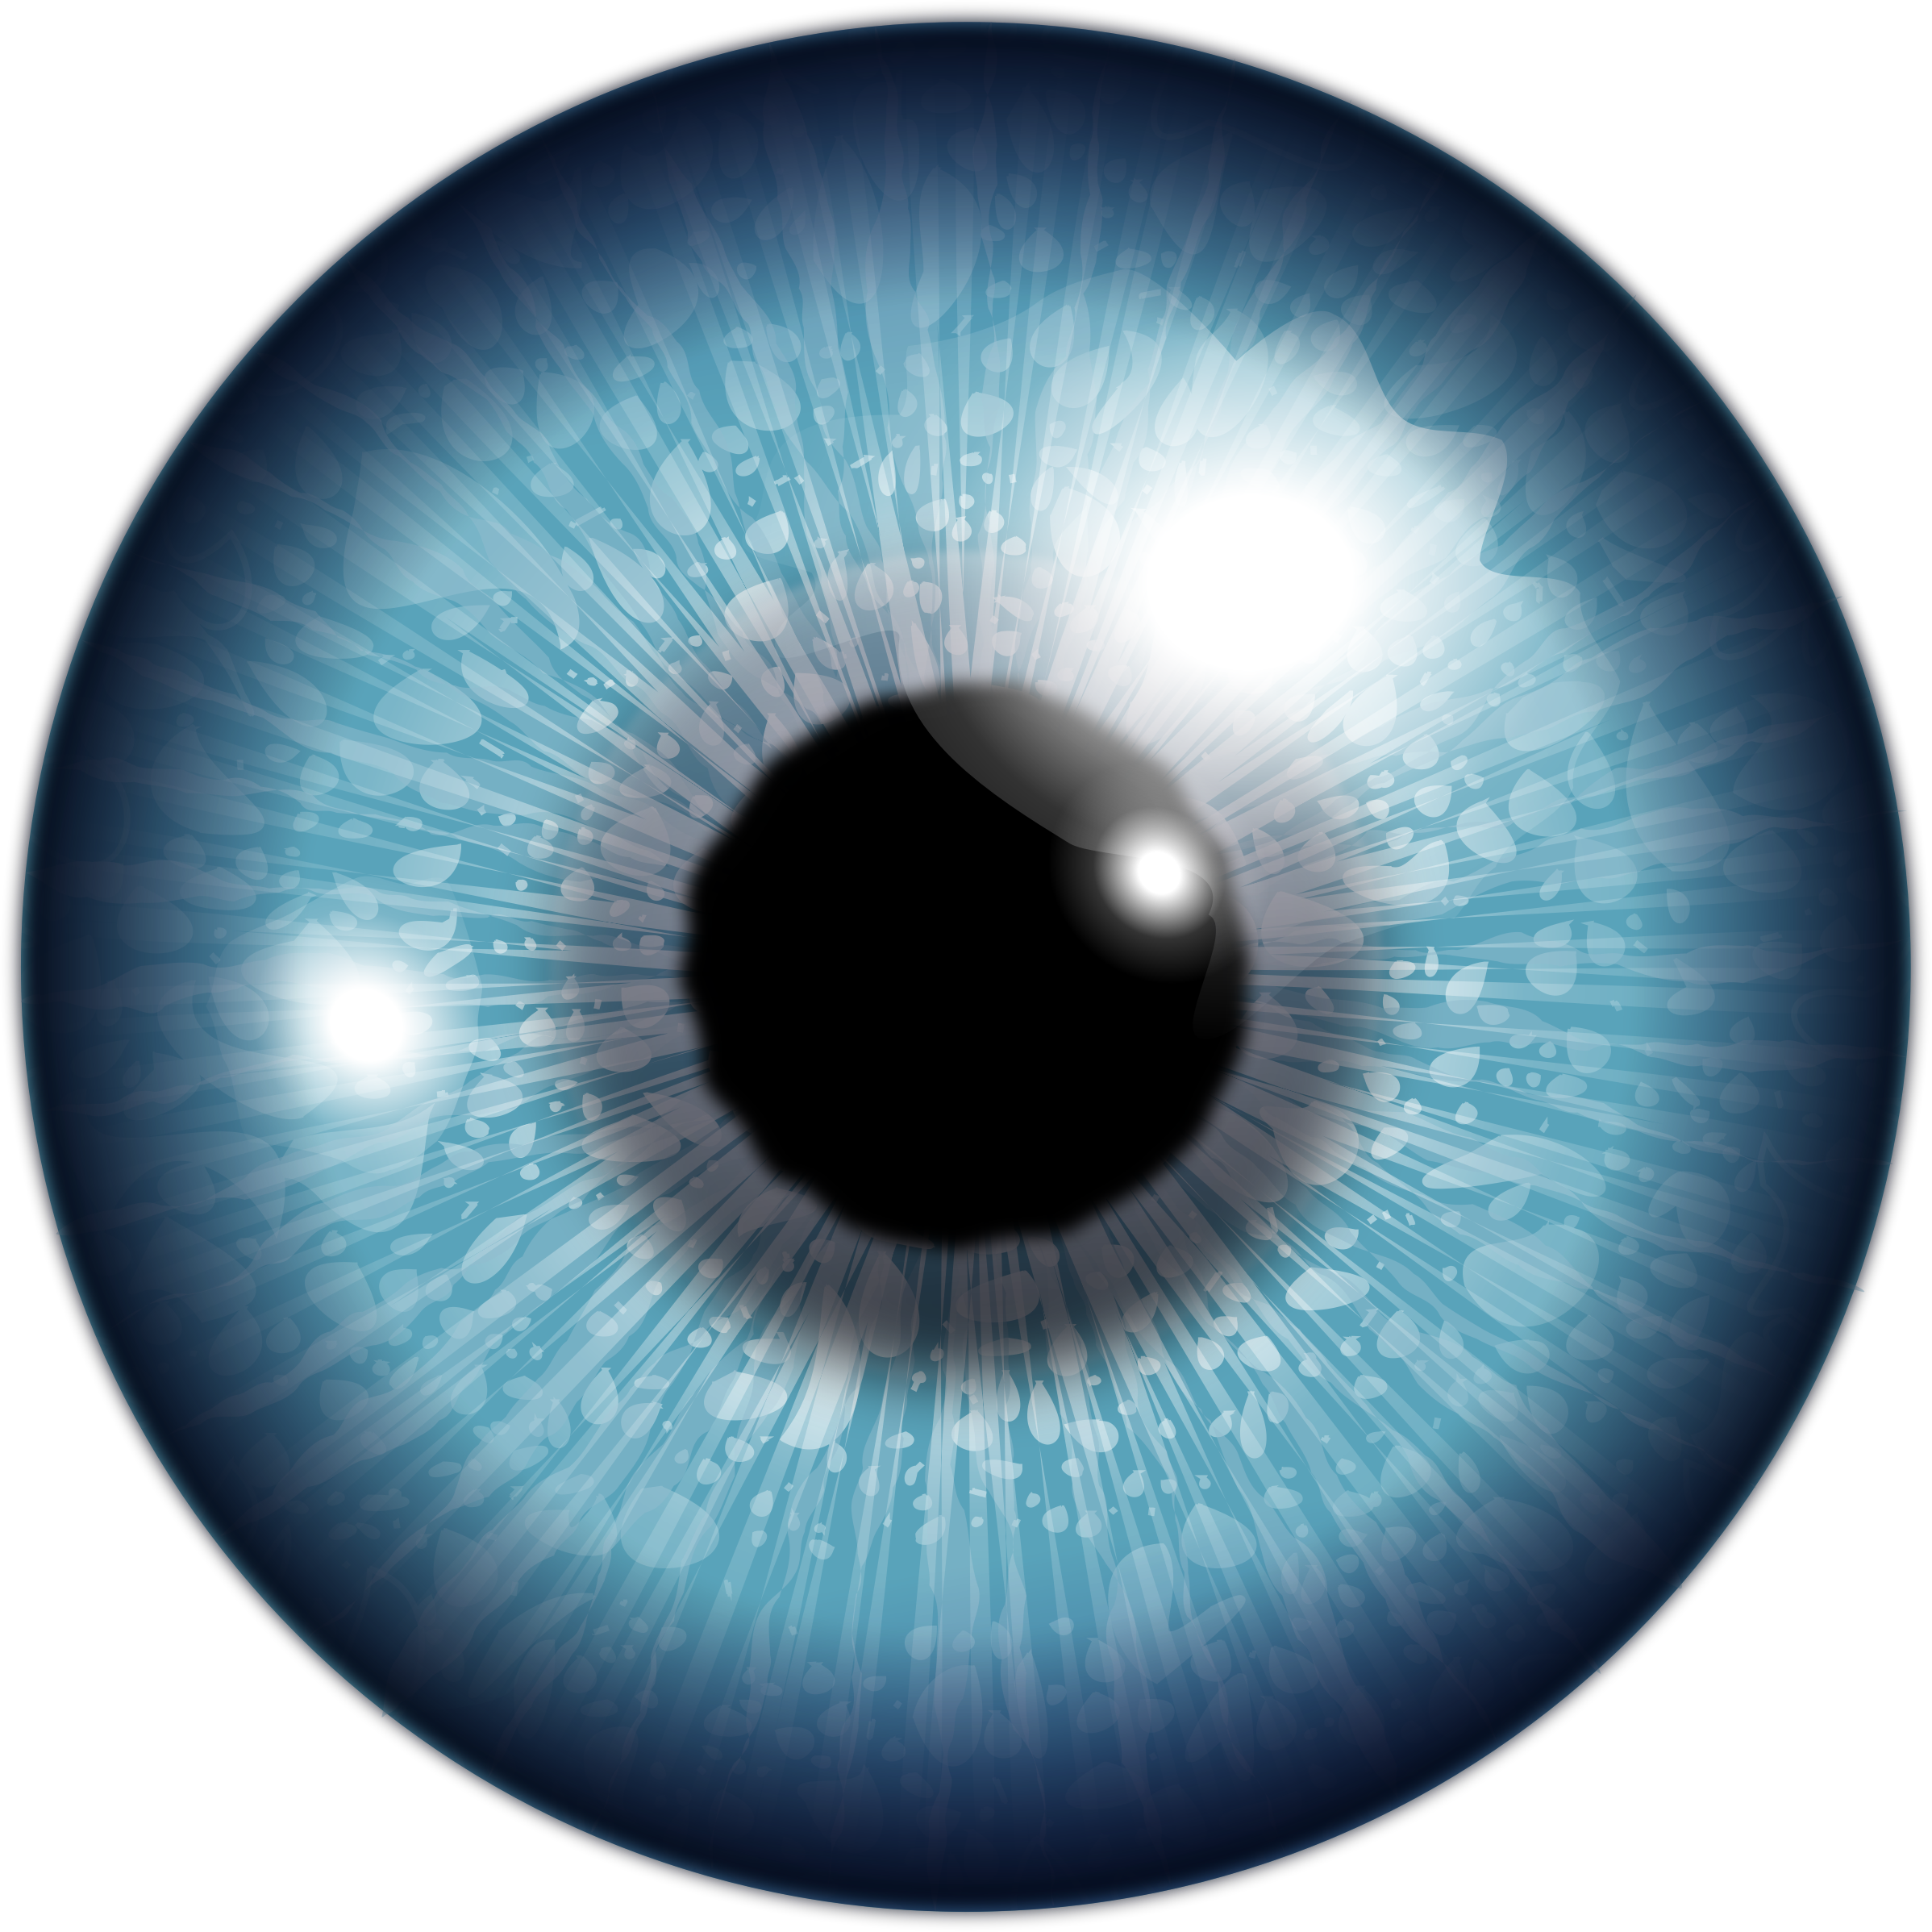 Eyes PNG images free download.